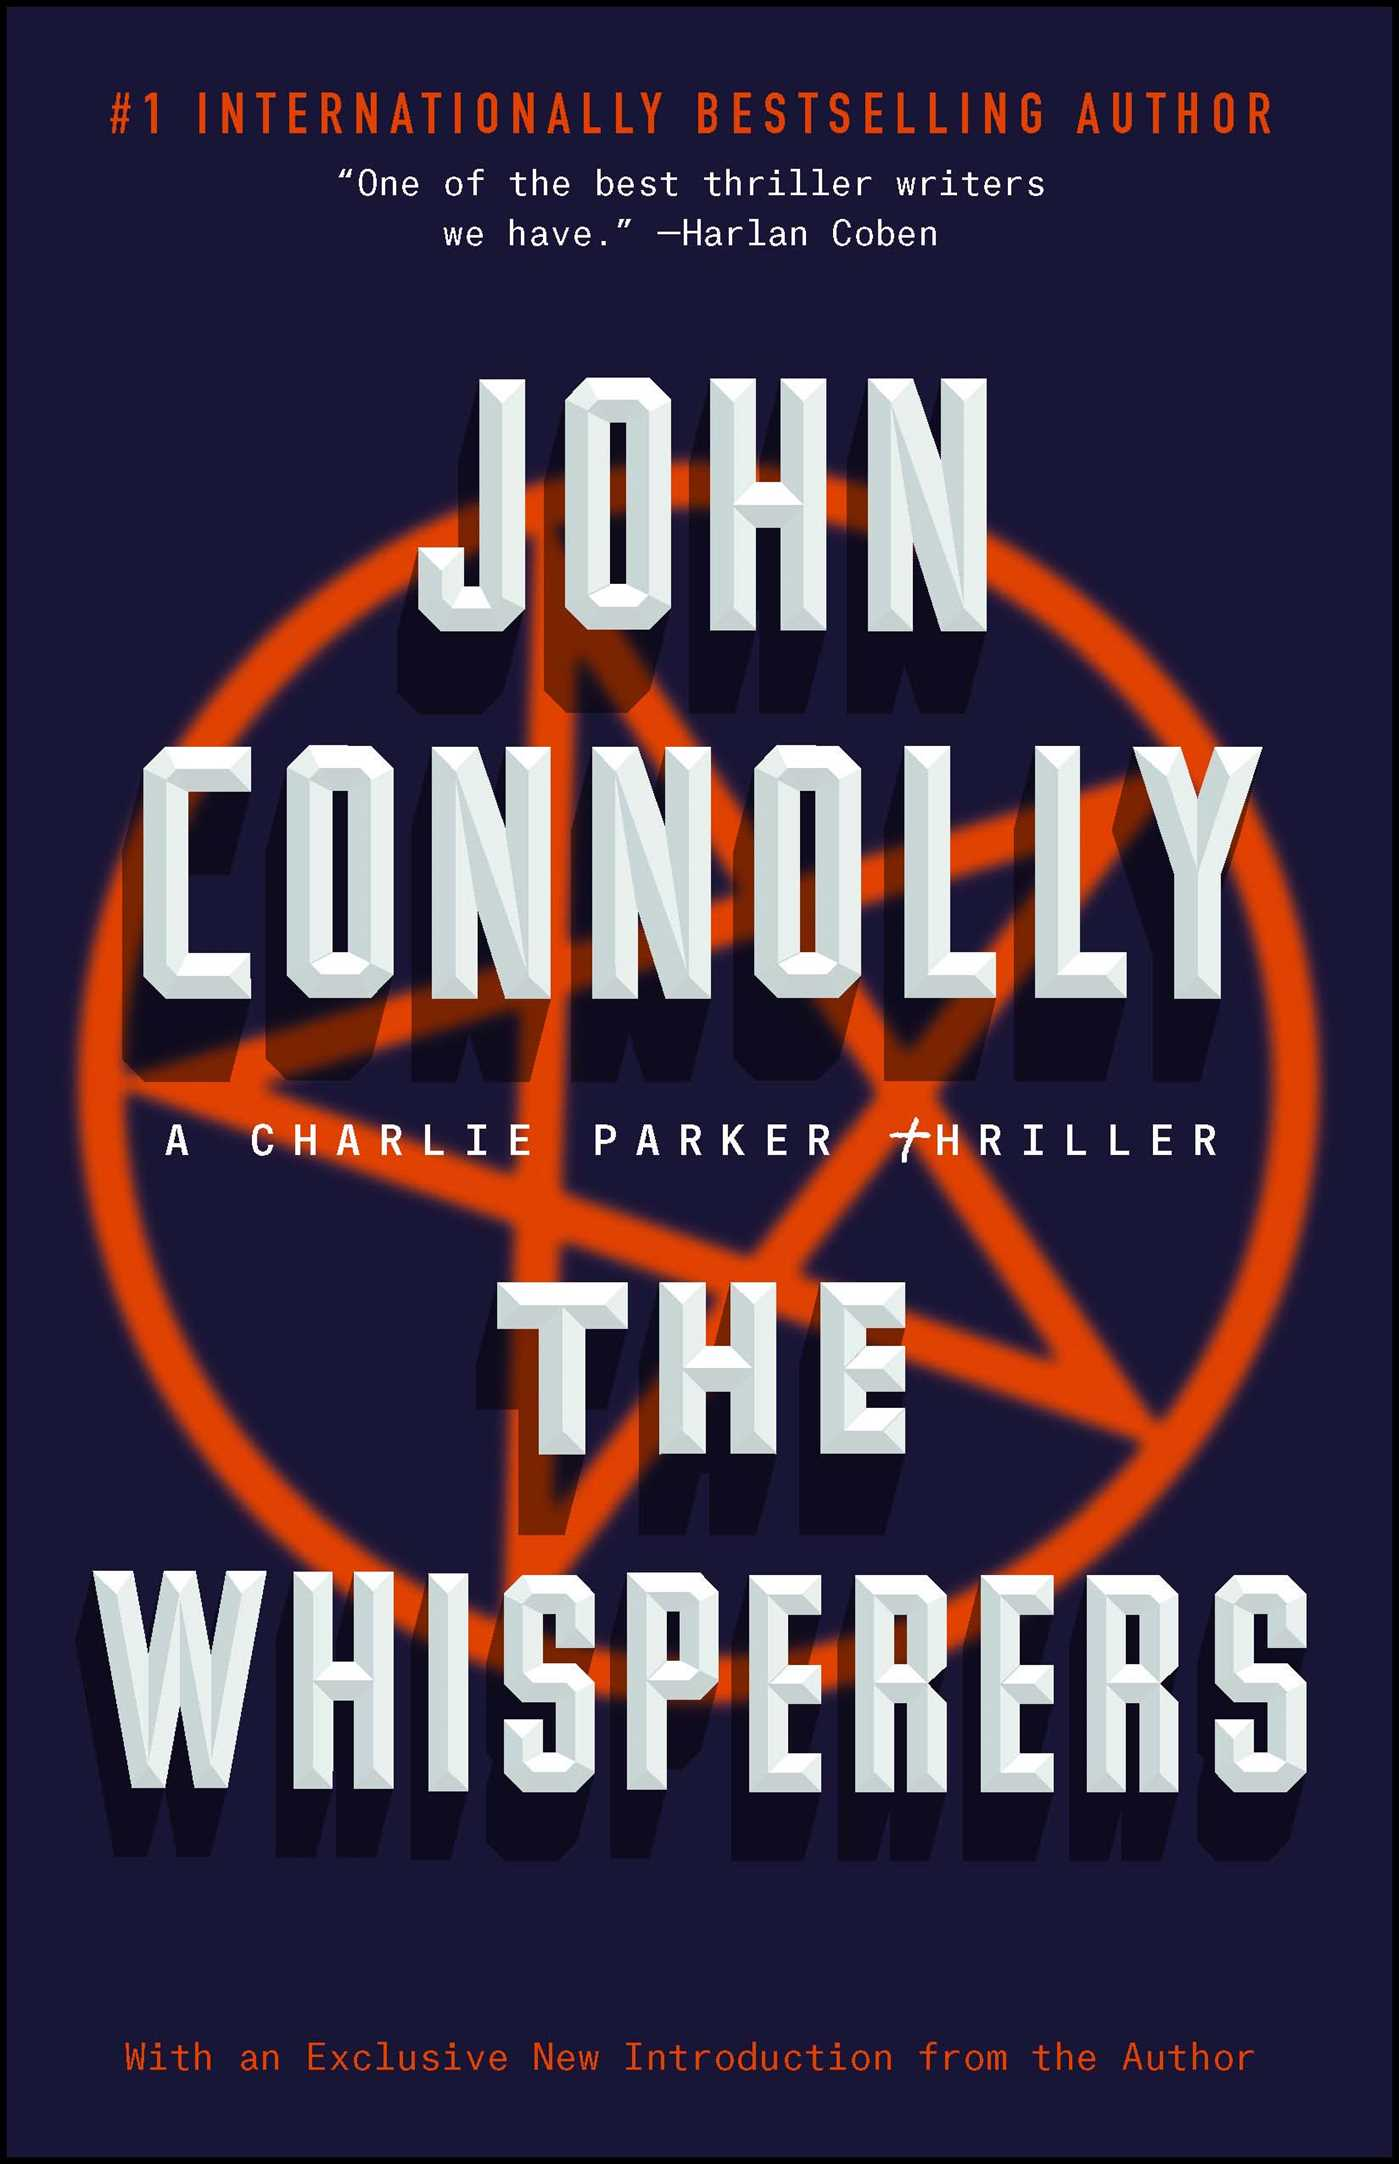 The whisperers 9781439165225 hr